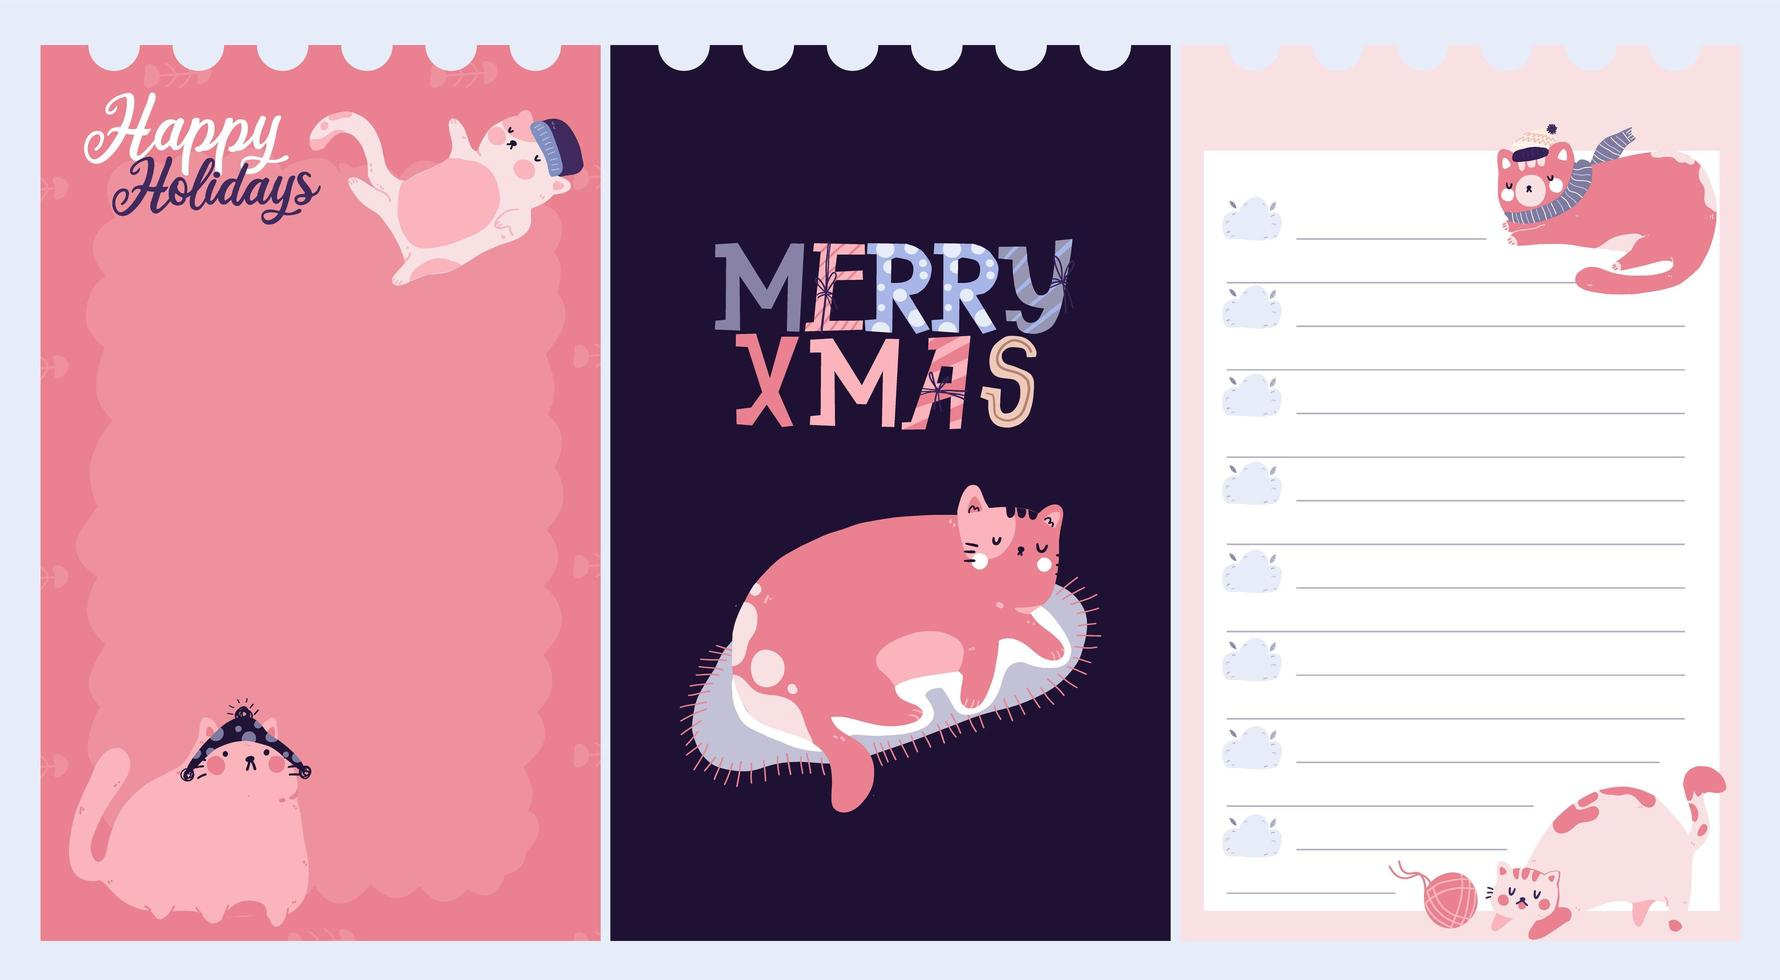 kerstvakantie sticker, dagboek, notities ingesteld vector